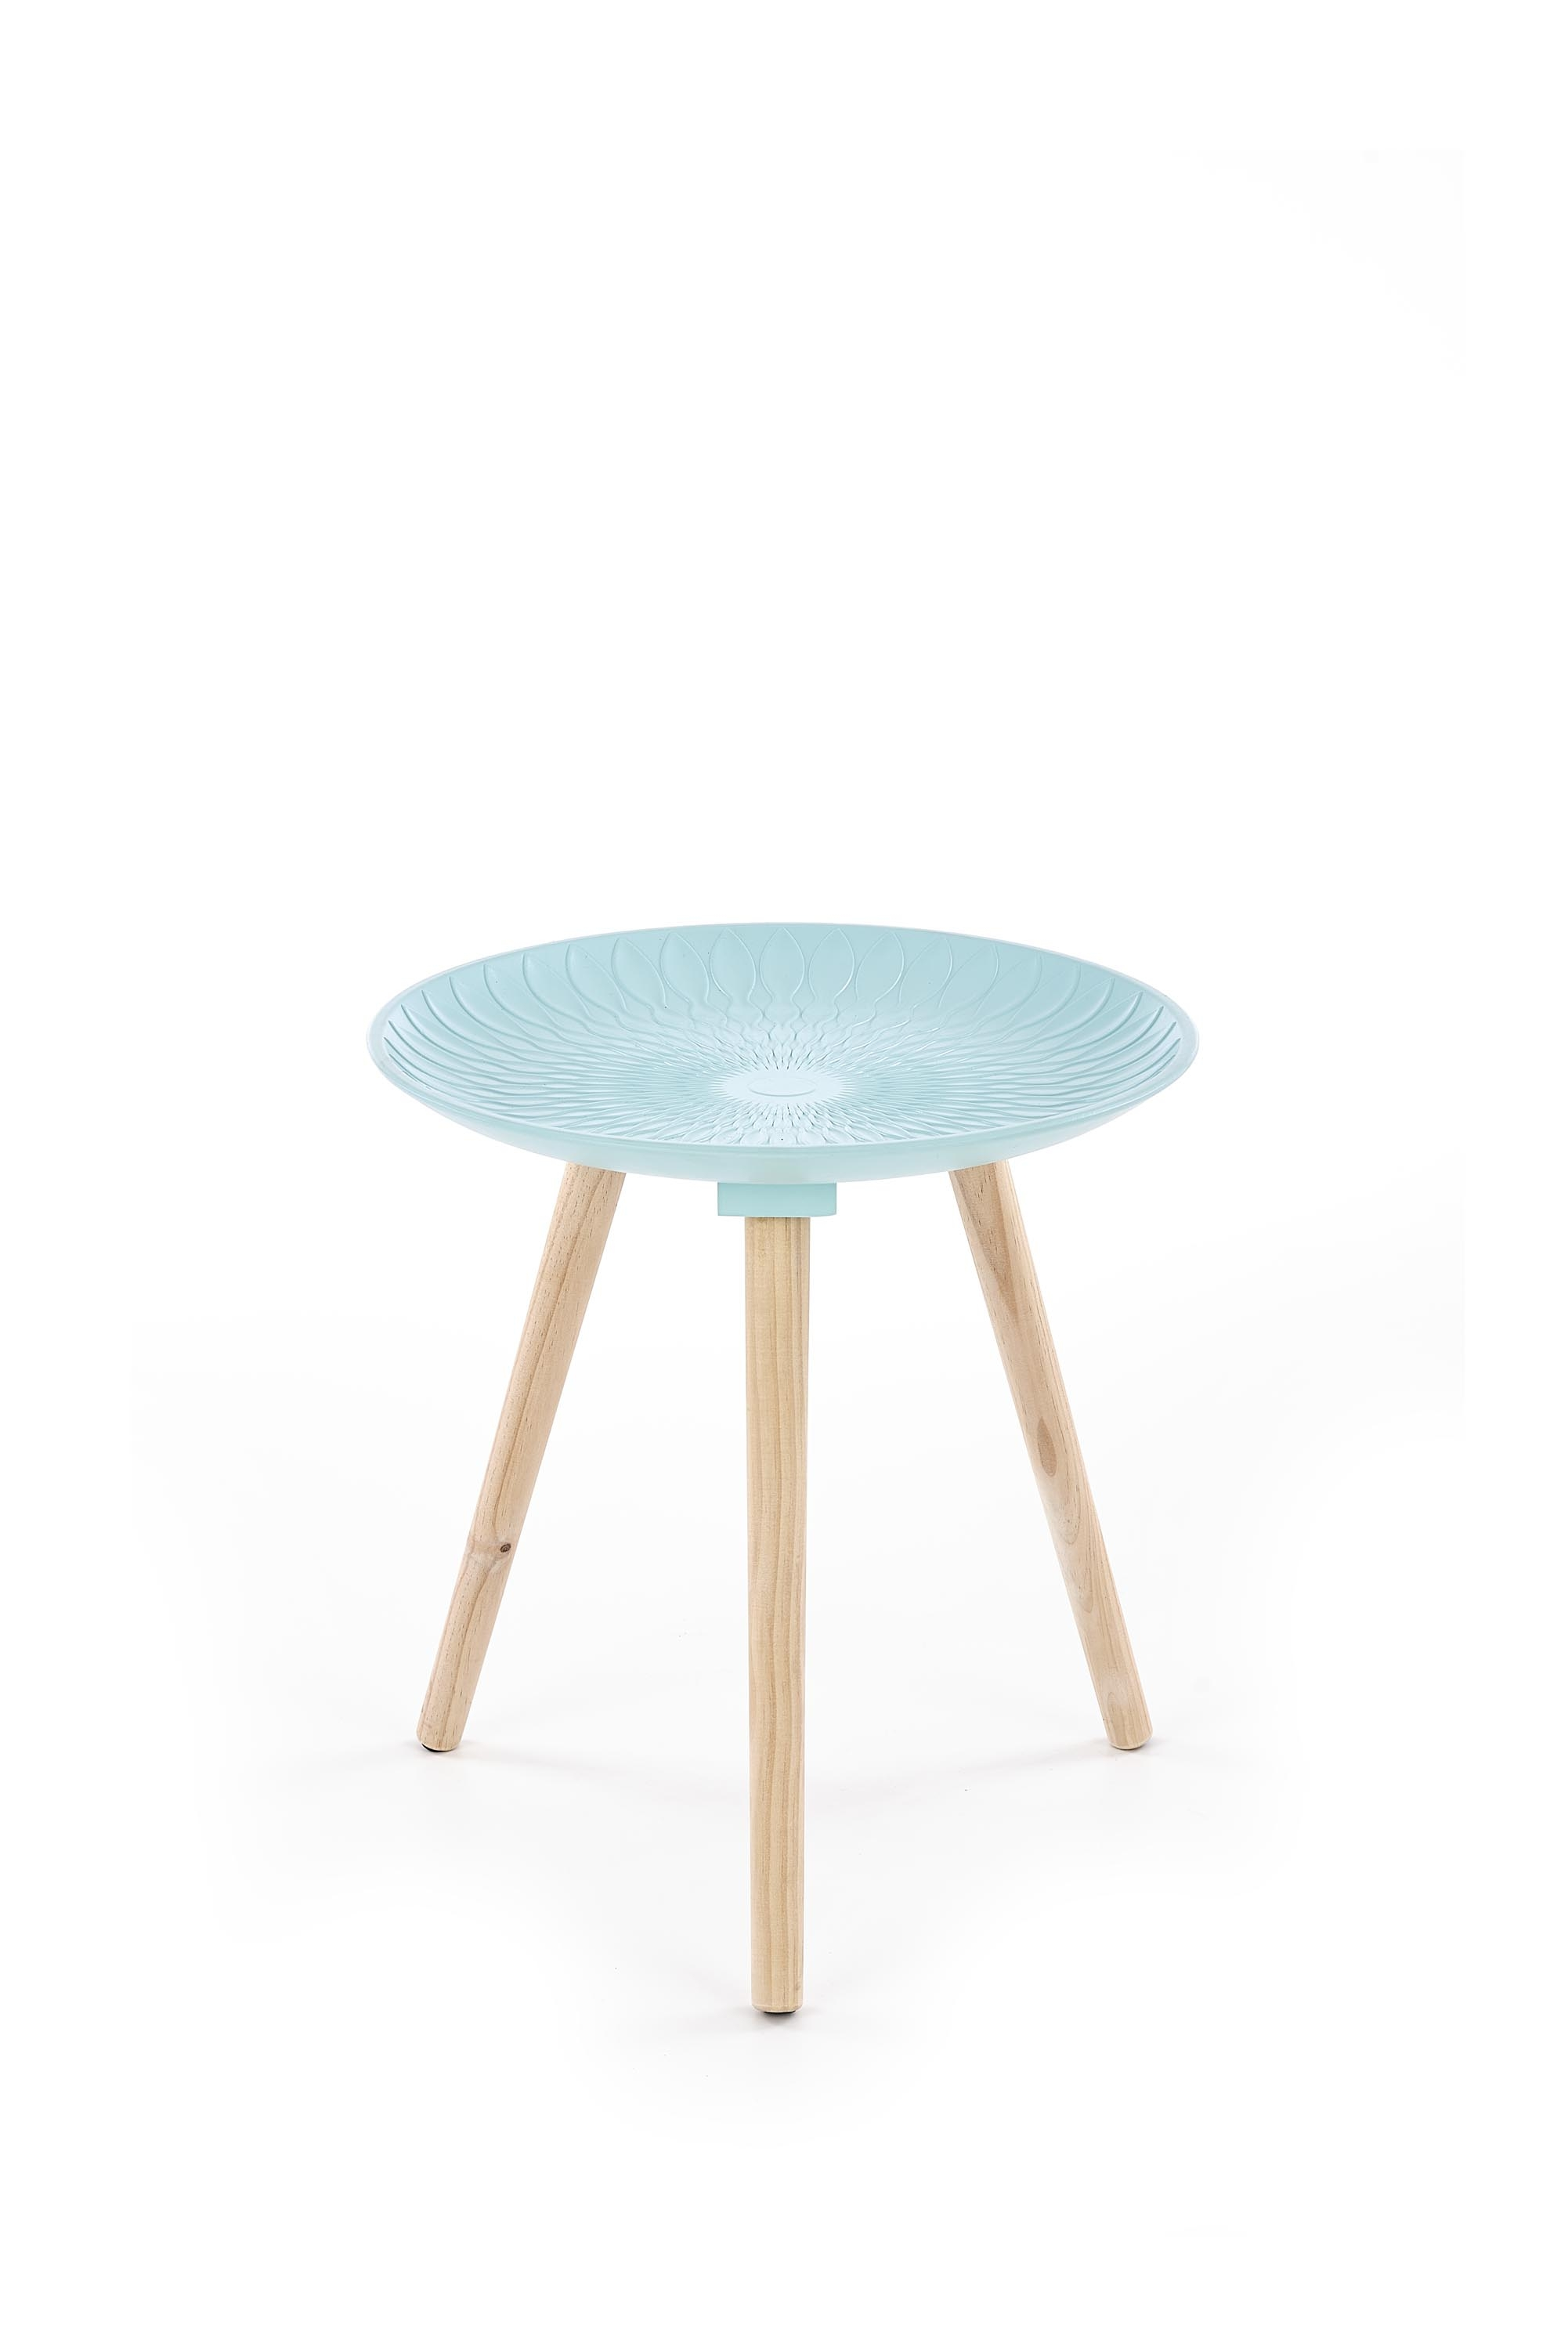 Masa de cafea din MDF si lemn de pin Bingo Light Blue, Ø40xH42 cm imagine